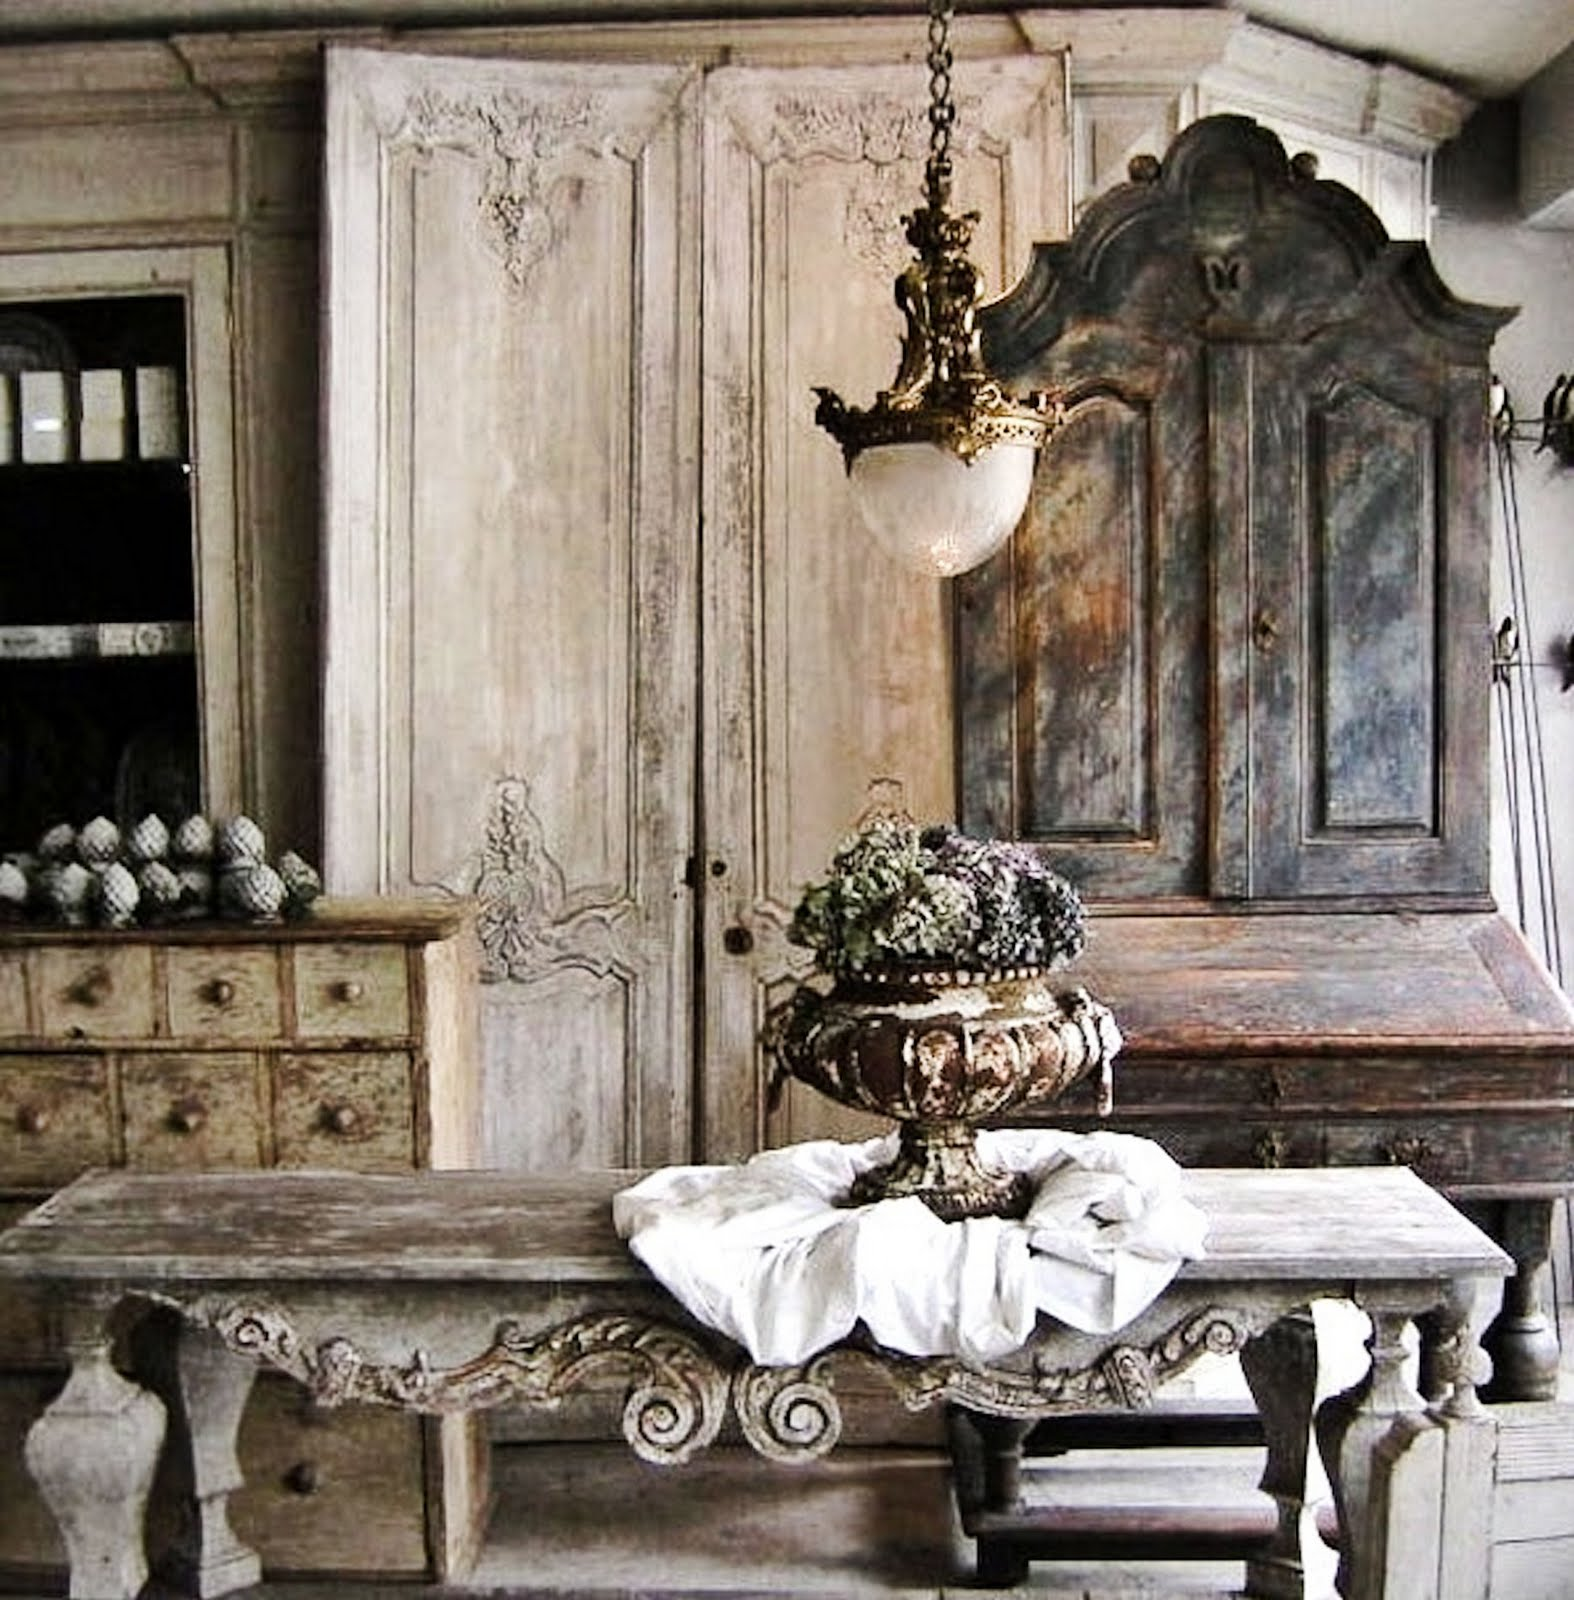 1000 ideas about french mansion on pinterest taxidermy mansions and miraculous ladybug - French house interior design ...